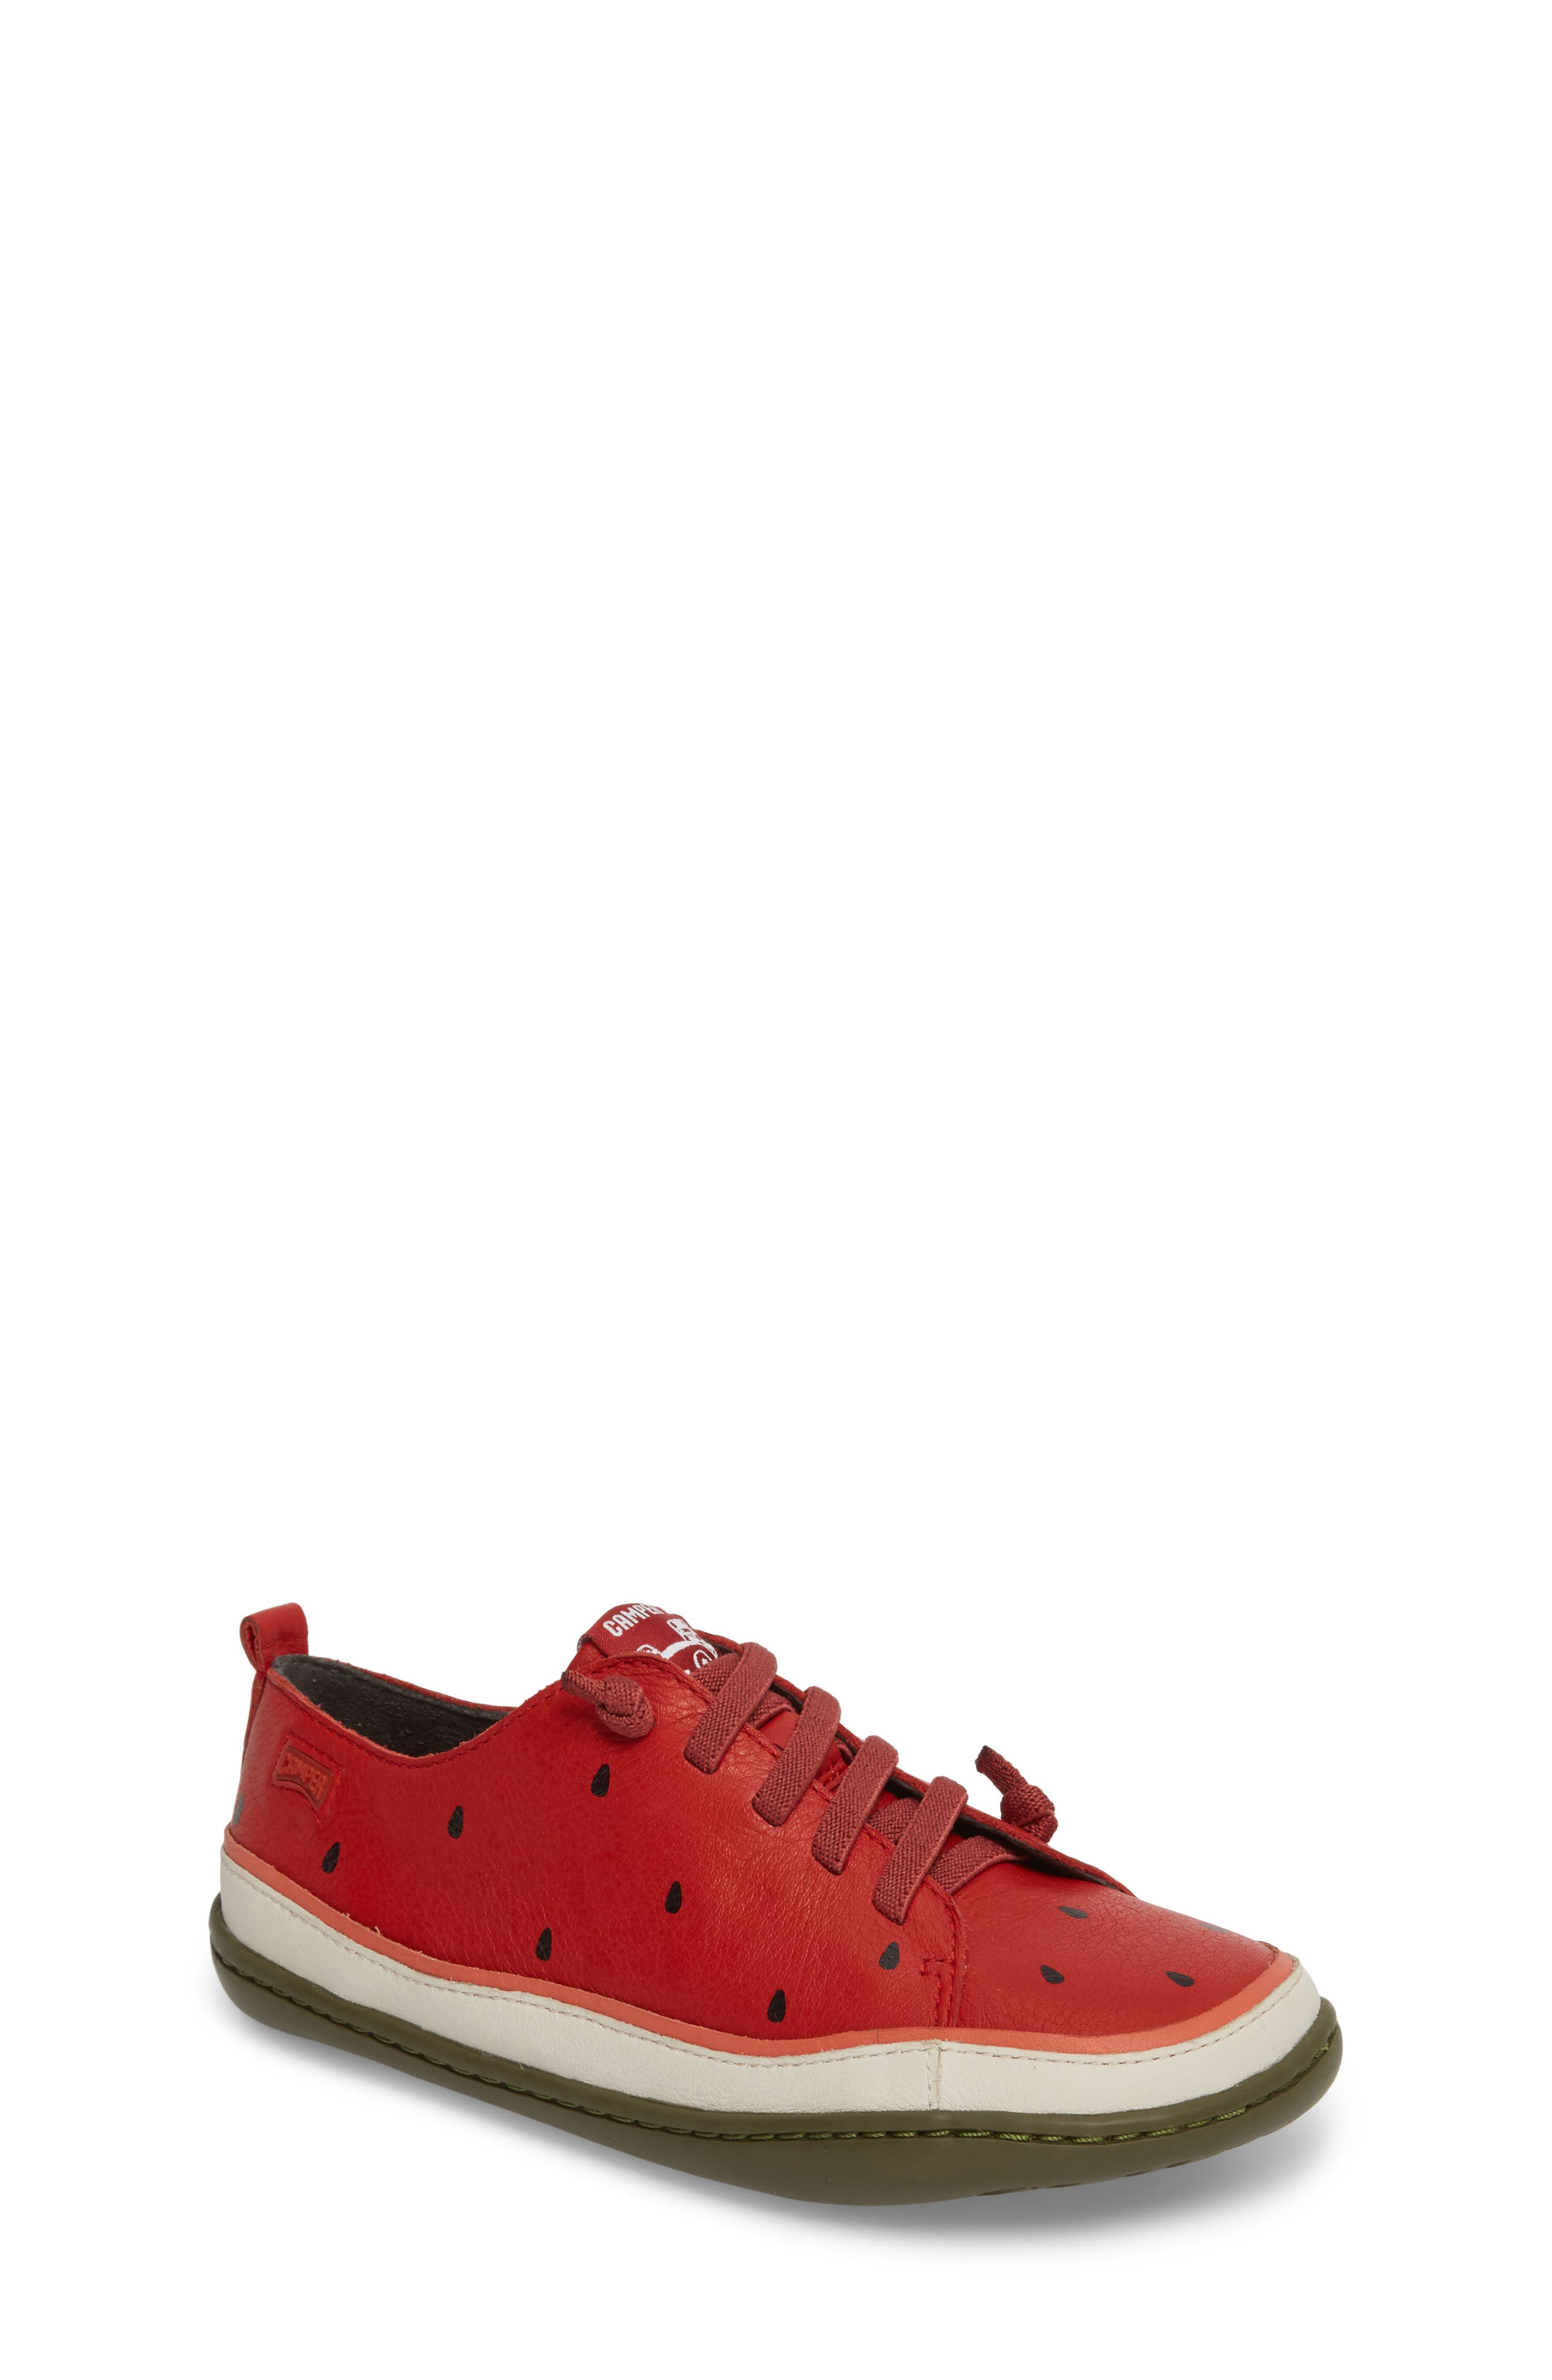 Twins Watermelon Sneaker,                         Main,                         color, Red